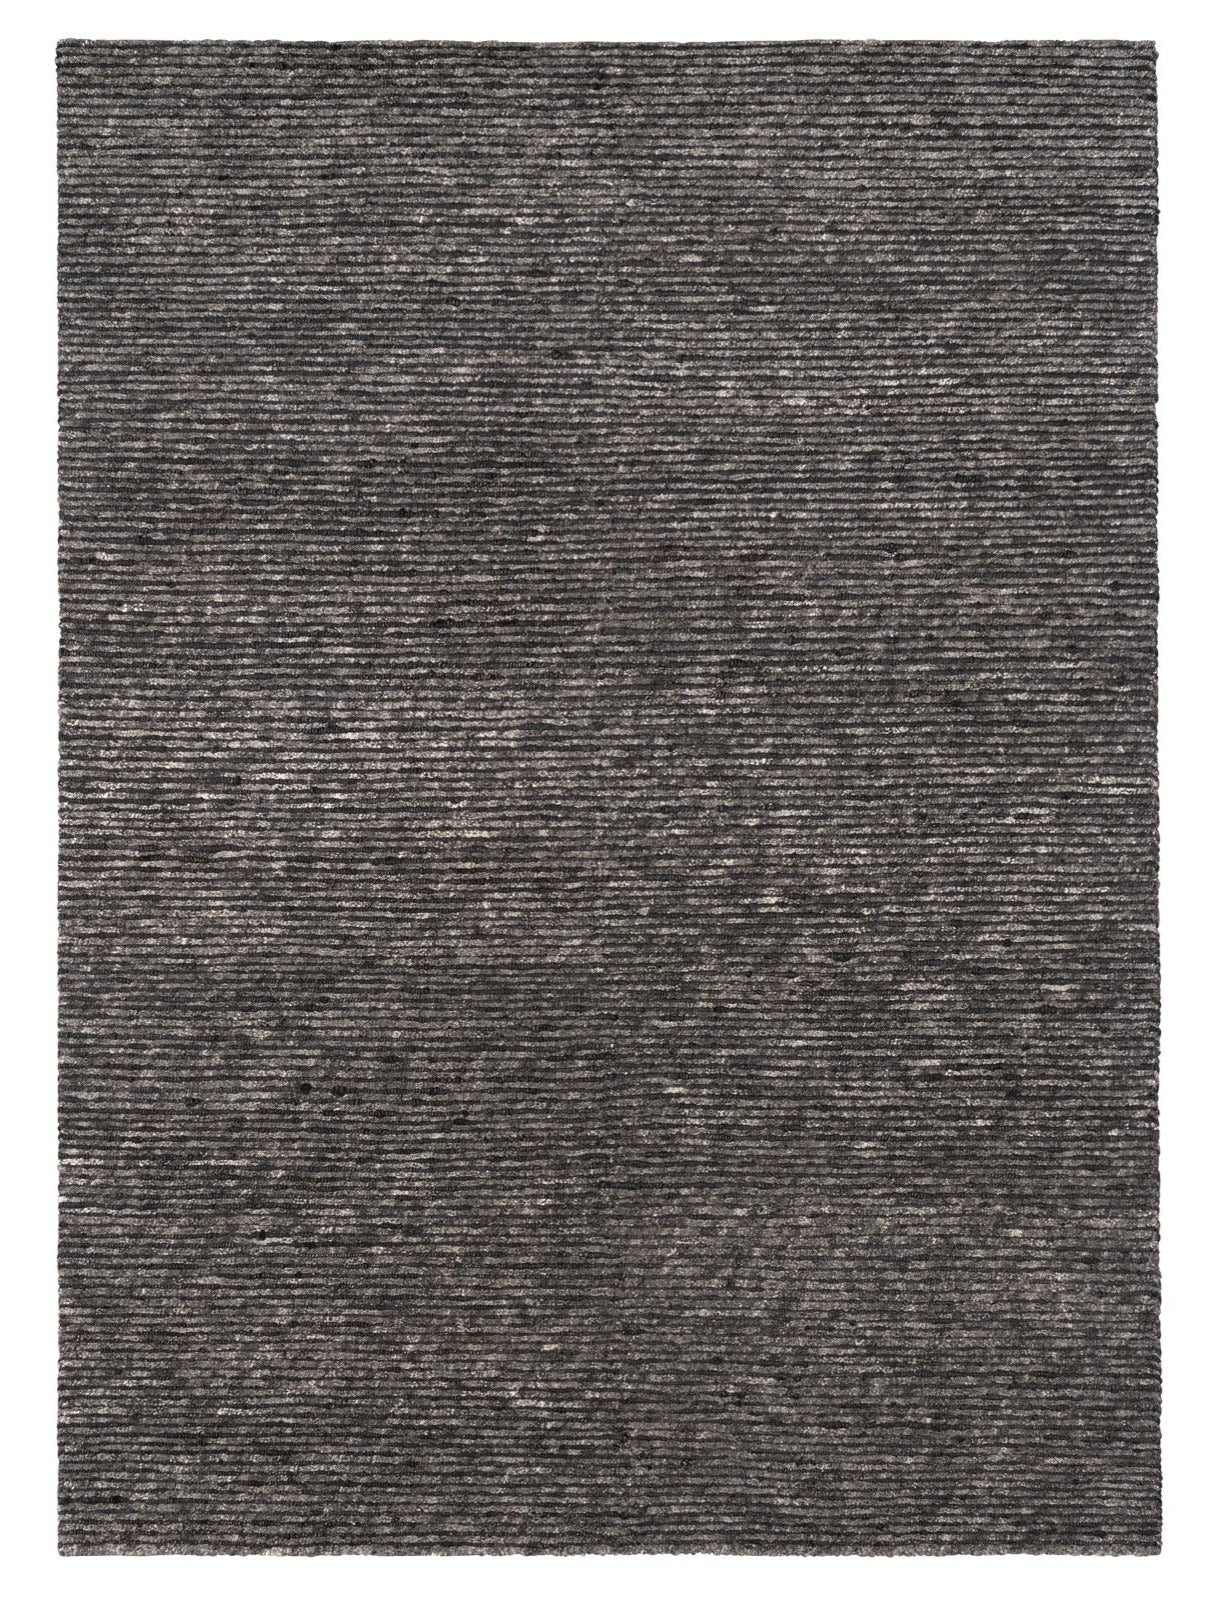 buy Ink Husk - Armadillo Floor Rug online